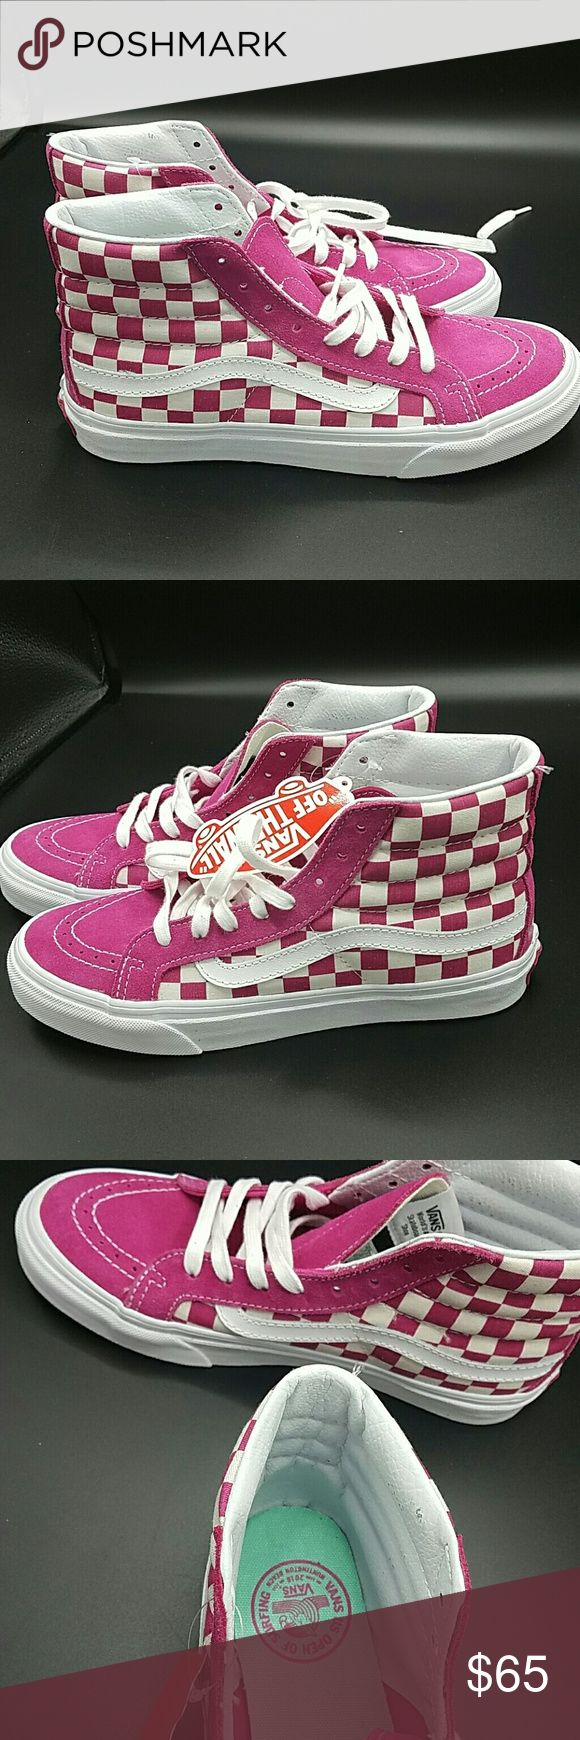 Sk8 Hi Slims Womens Pink Checkerboard Skate High Slim Vans Vans Shoes Sneakers